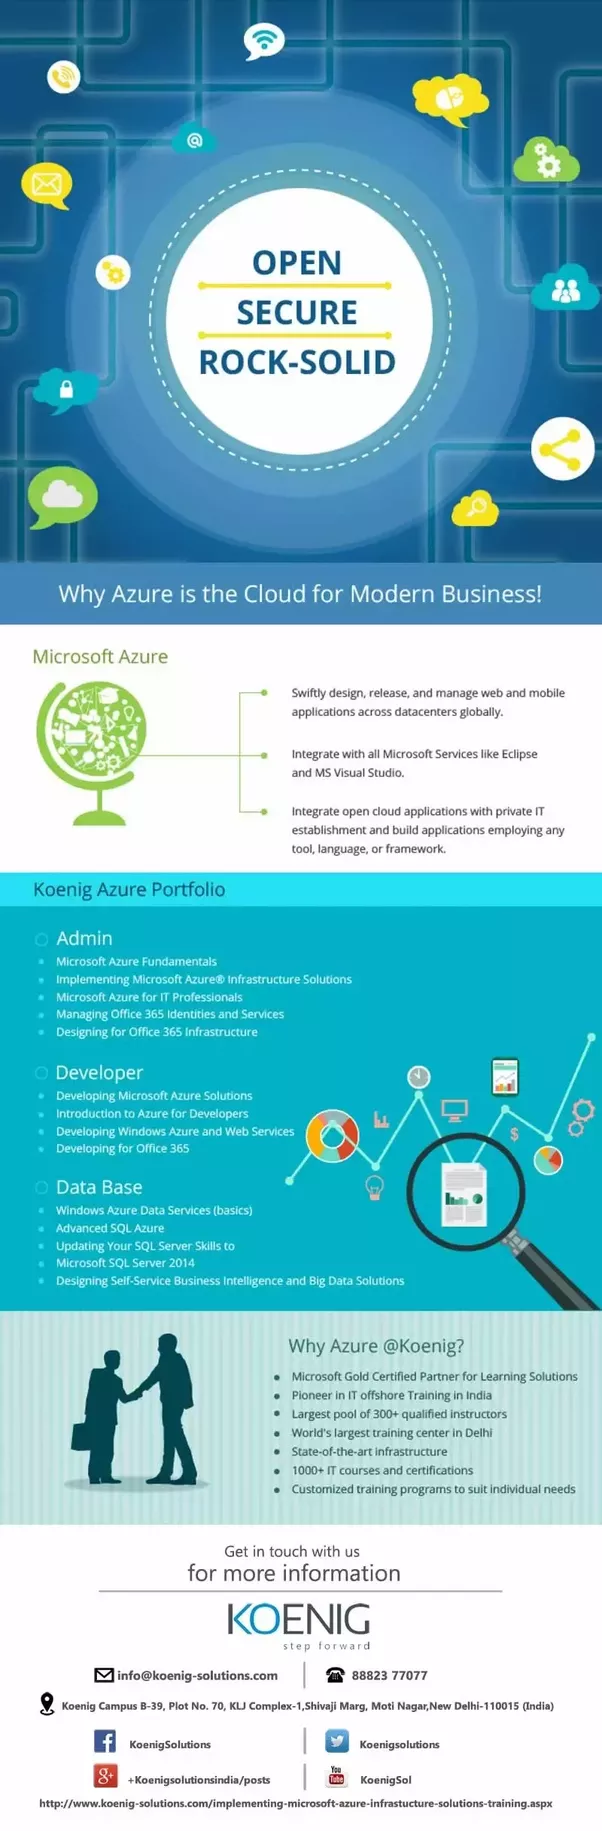 Which Is The Best Training Institute To Study Microsoft Azure In